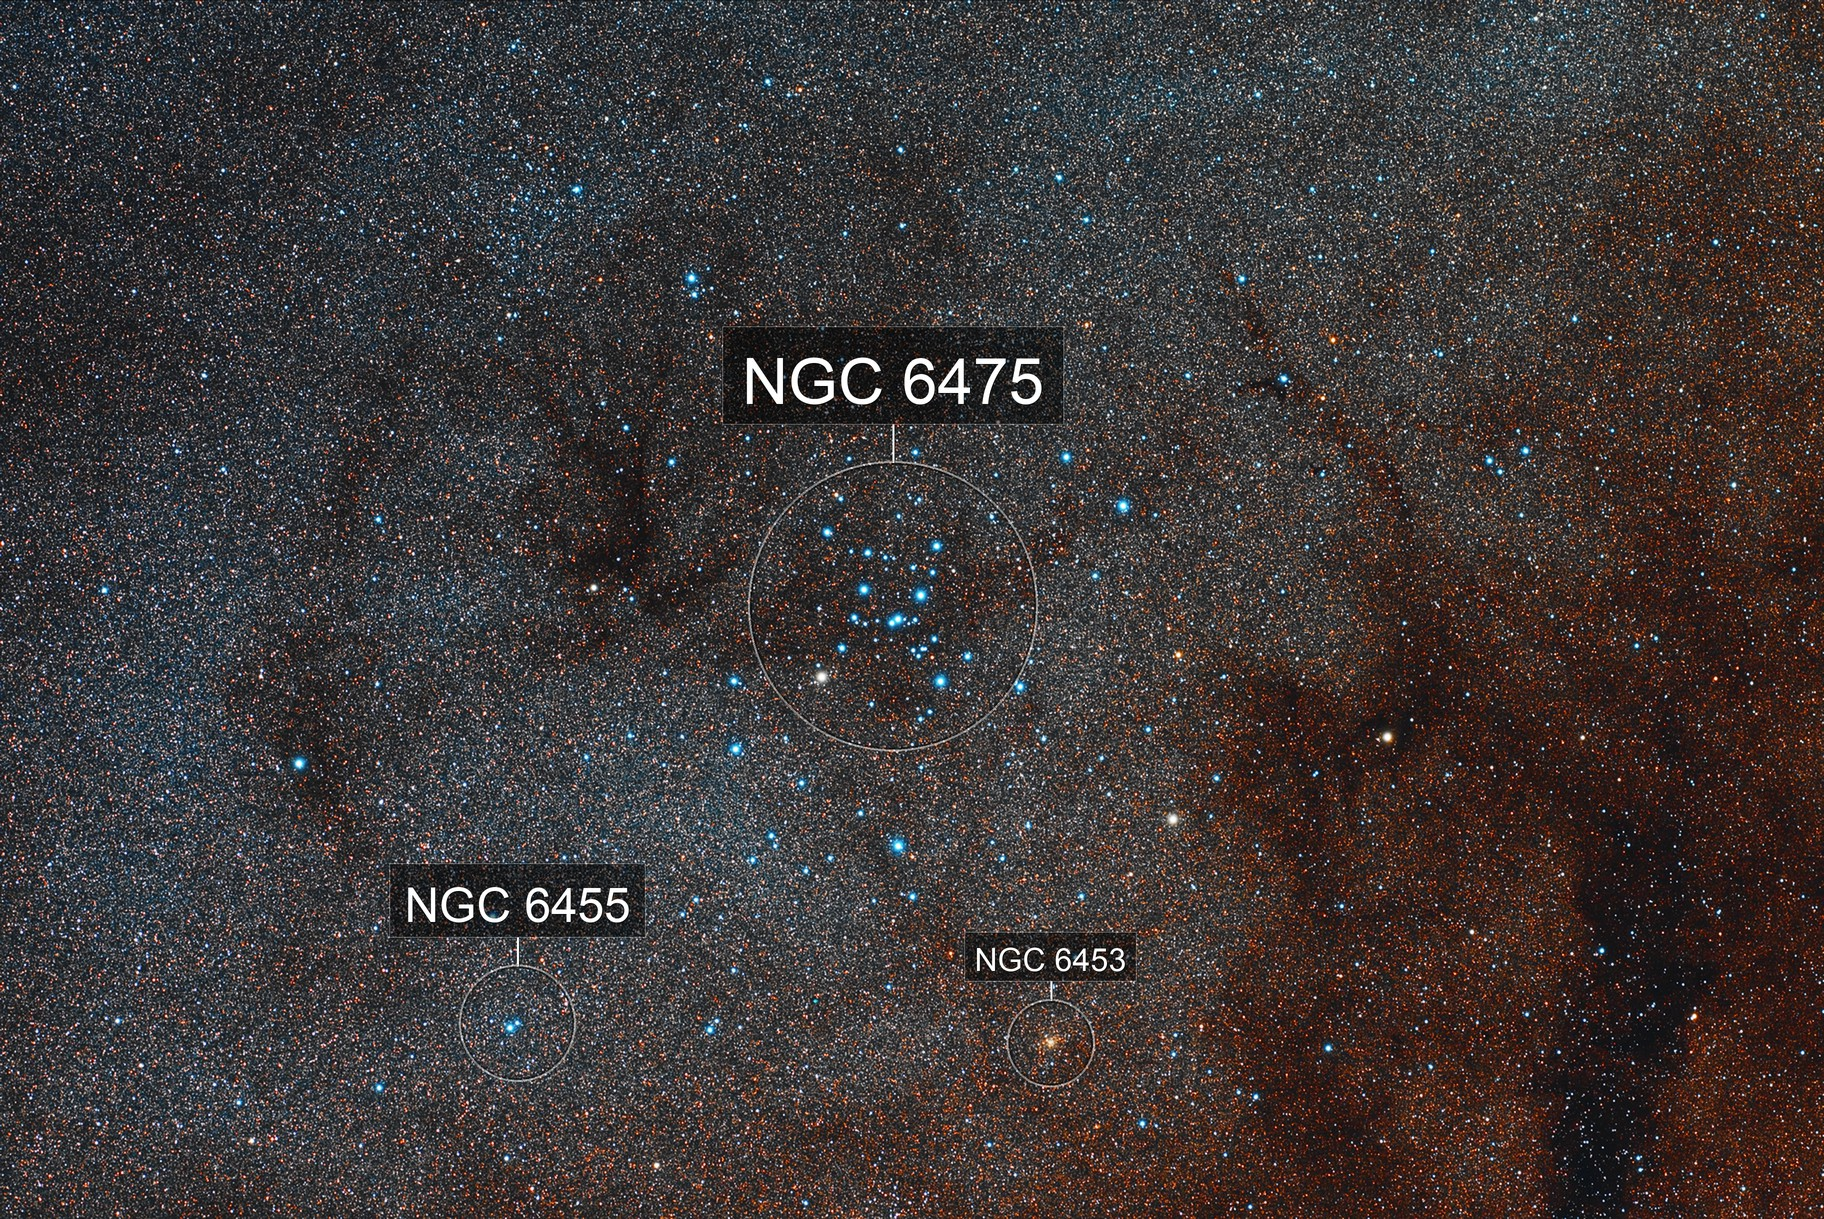 Ptolemy's Cluster